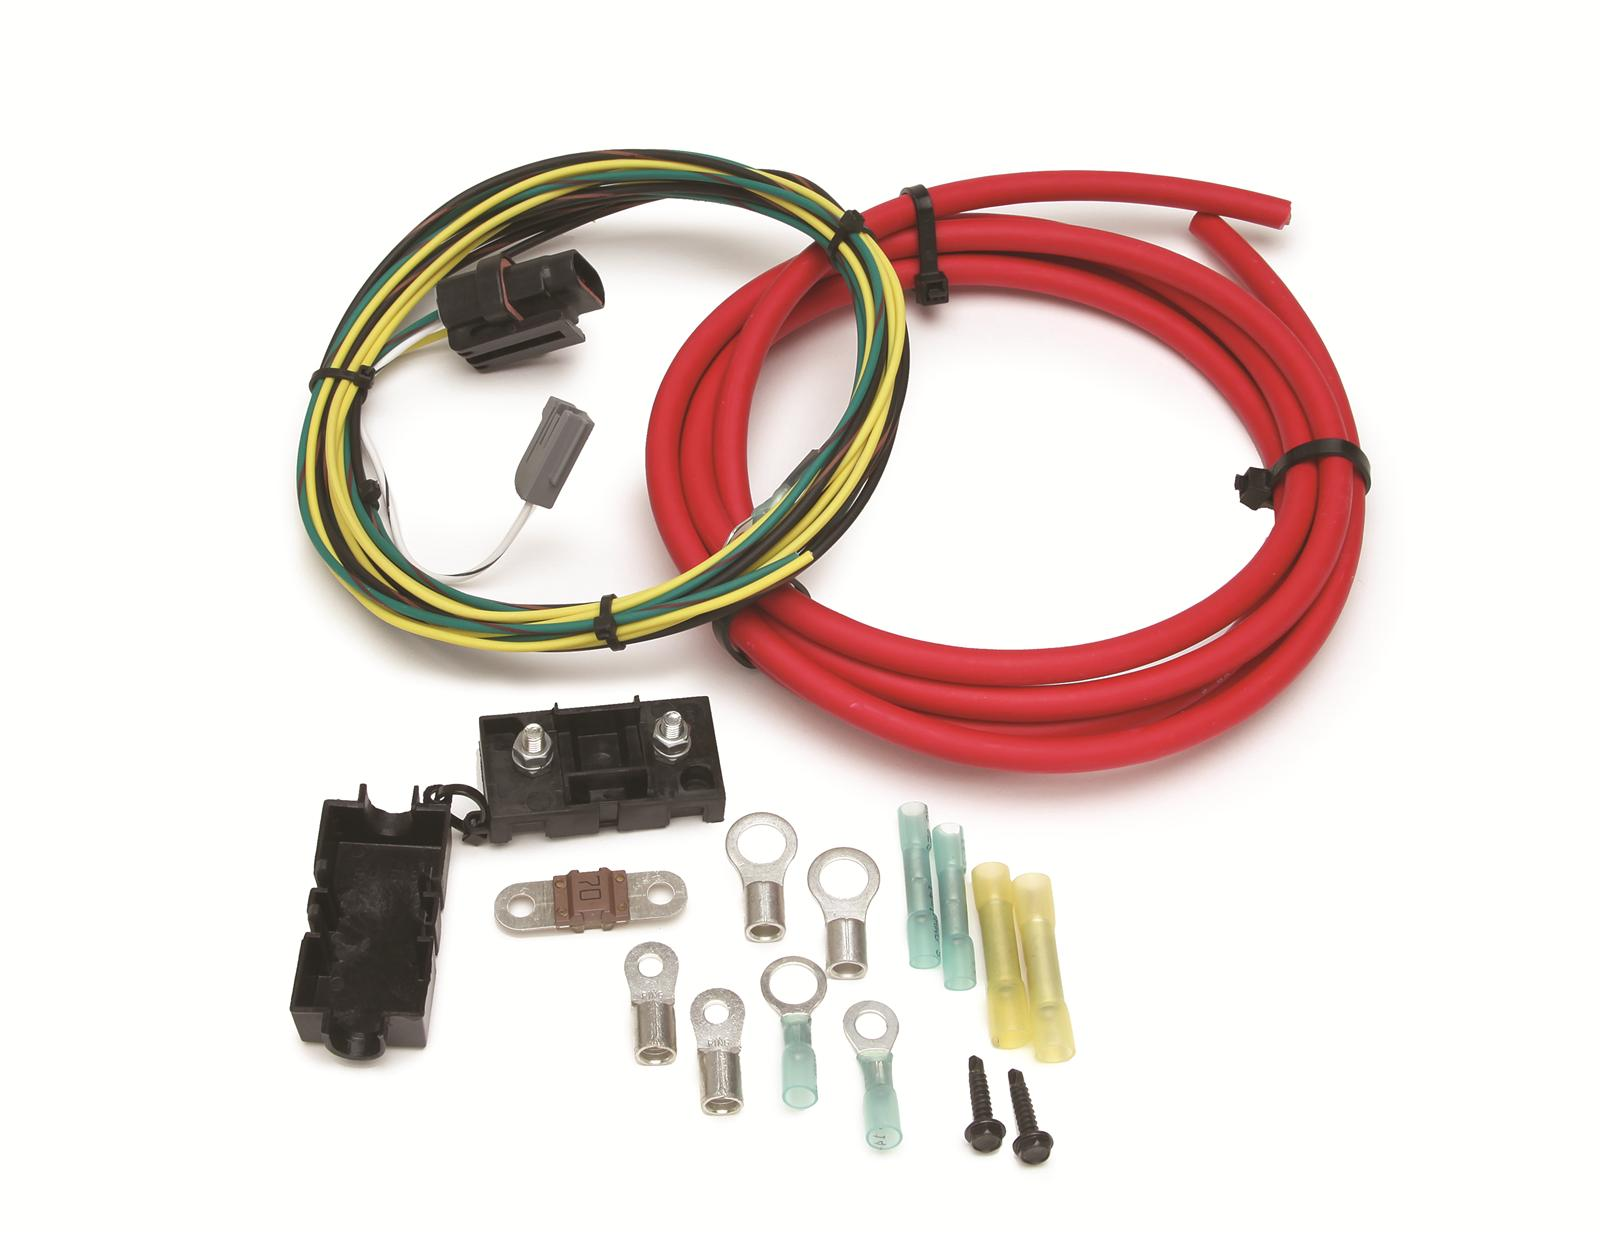 painless performance alternator wiring kits 30831 - free shipping on orders  over $99 at summit racing